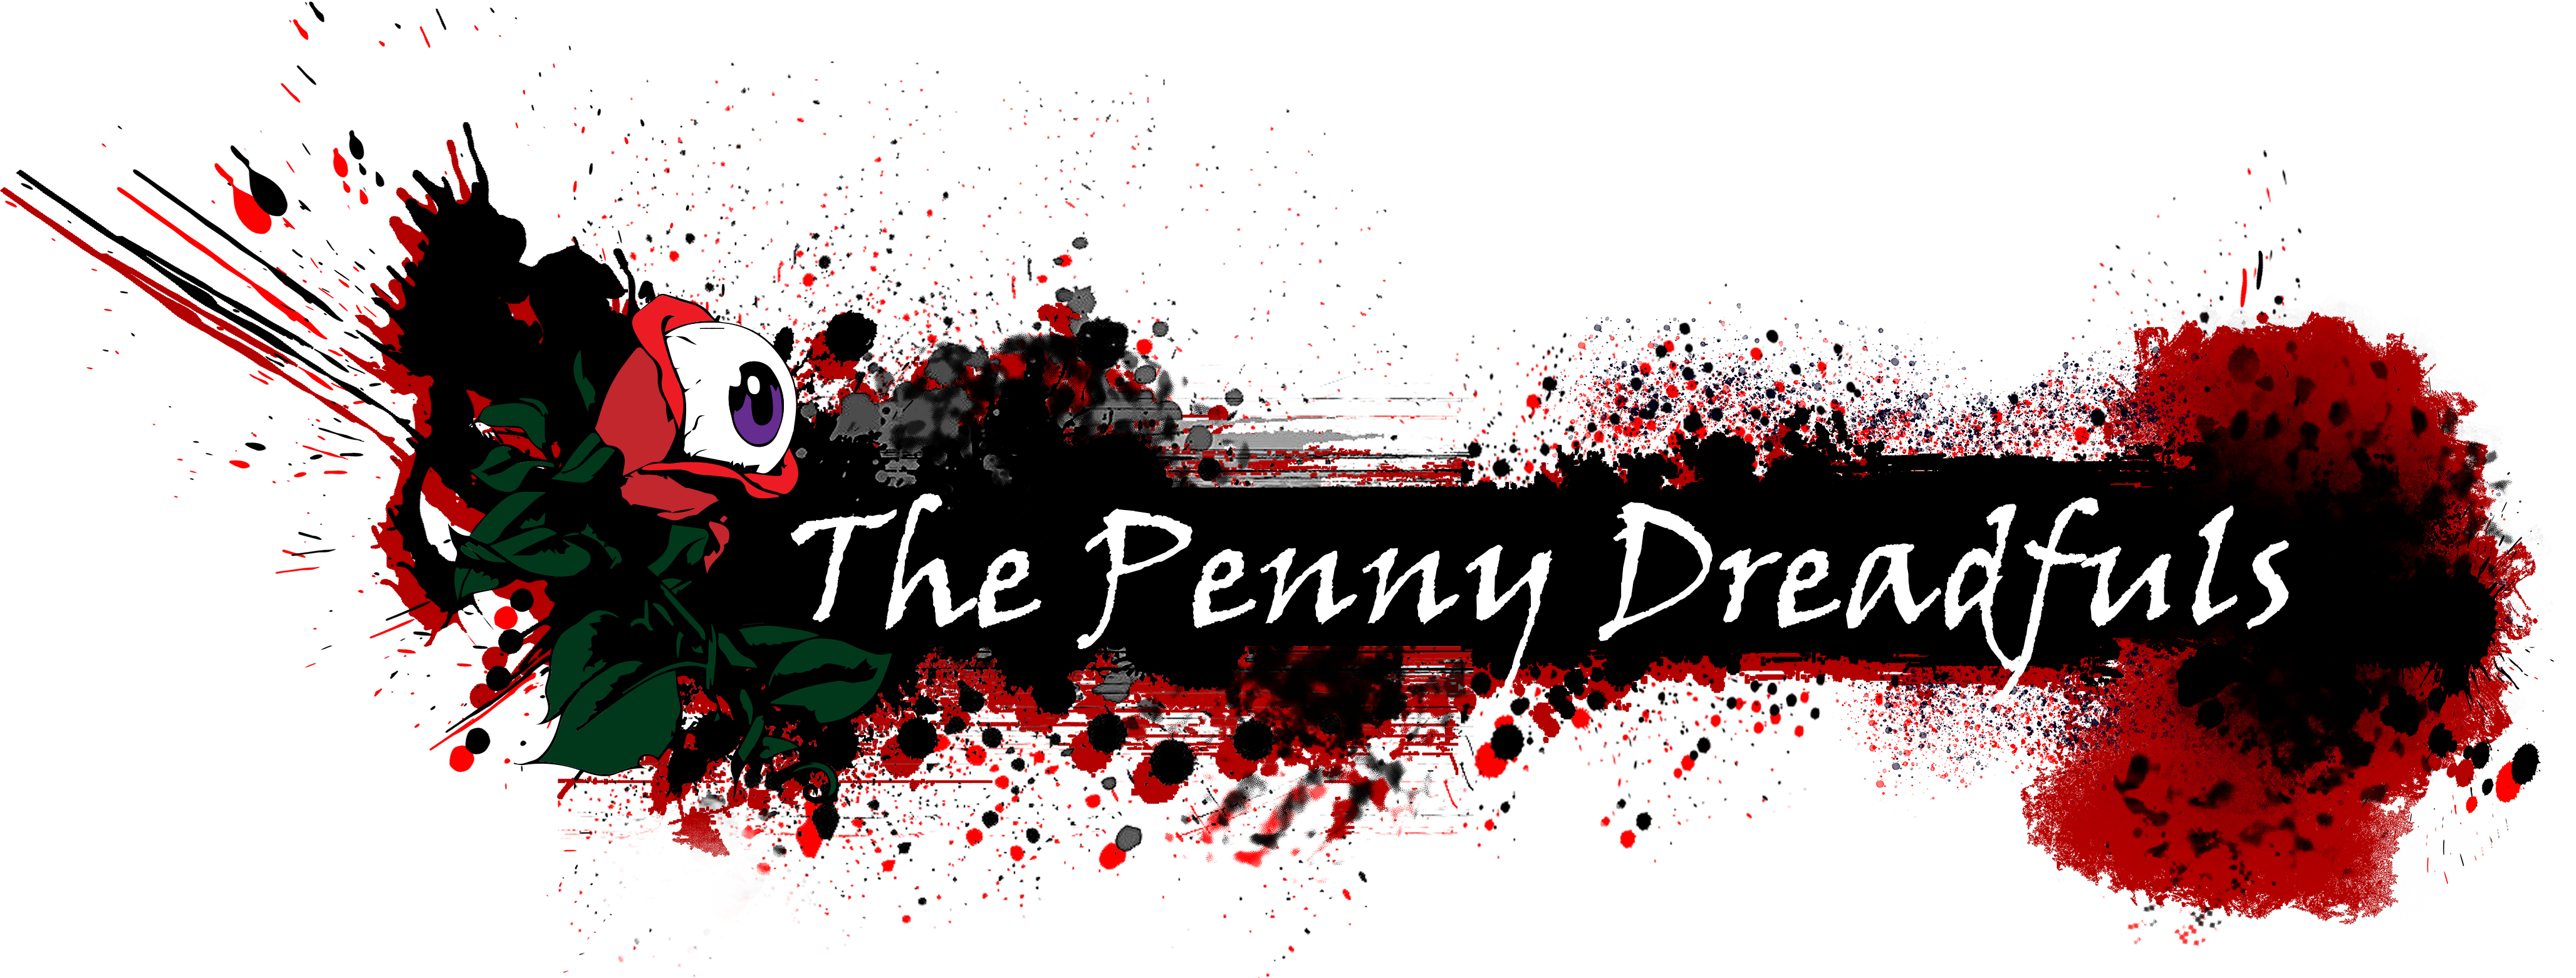 The Penny Dreadfuls.png